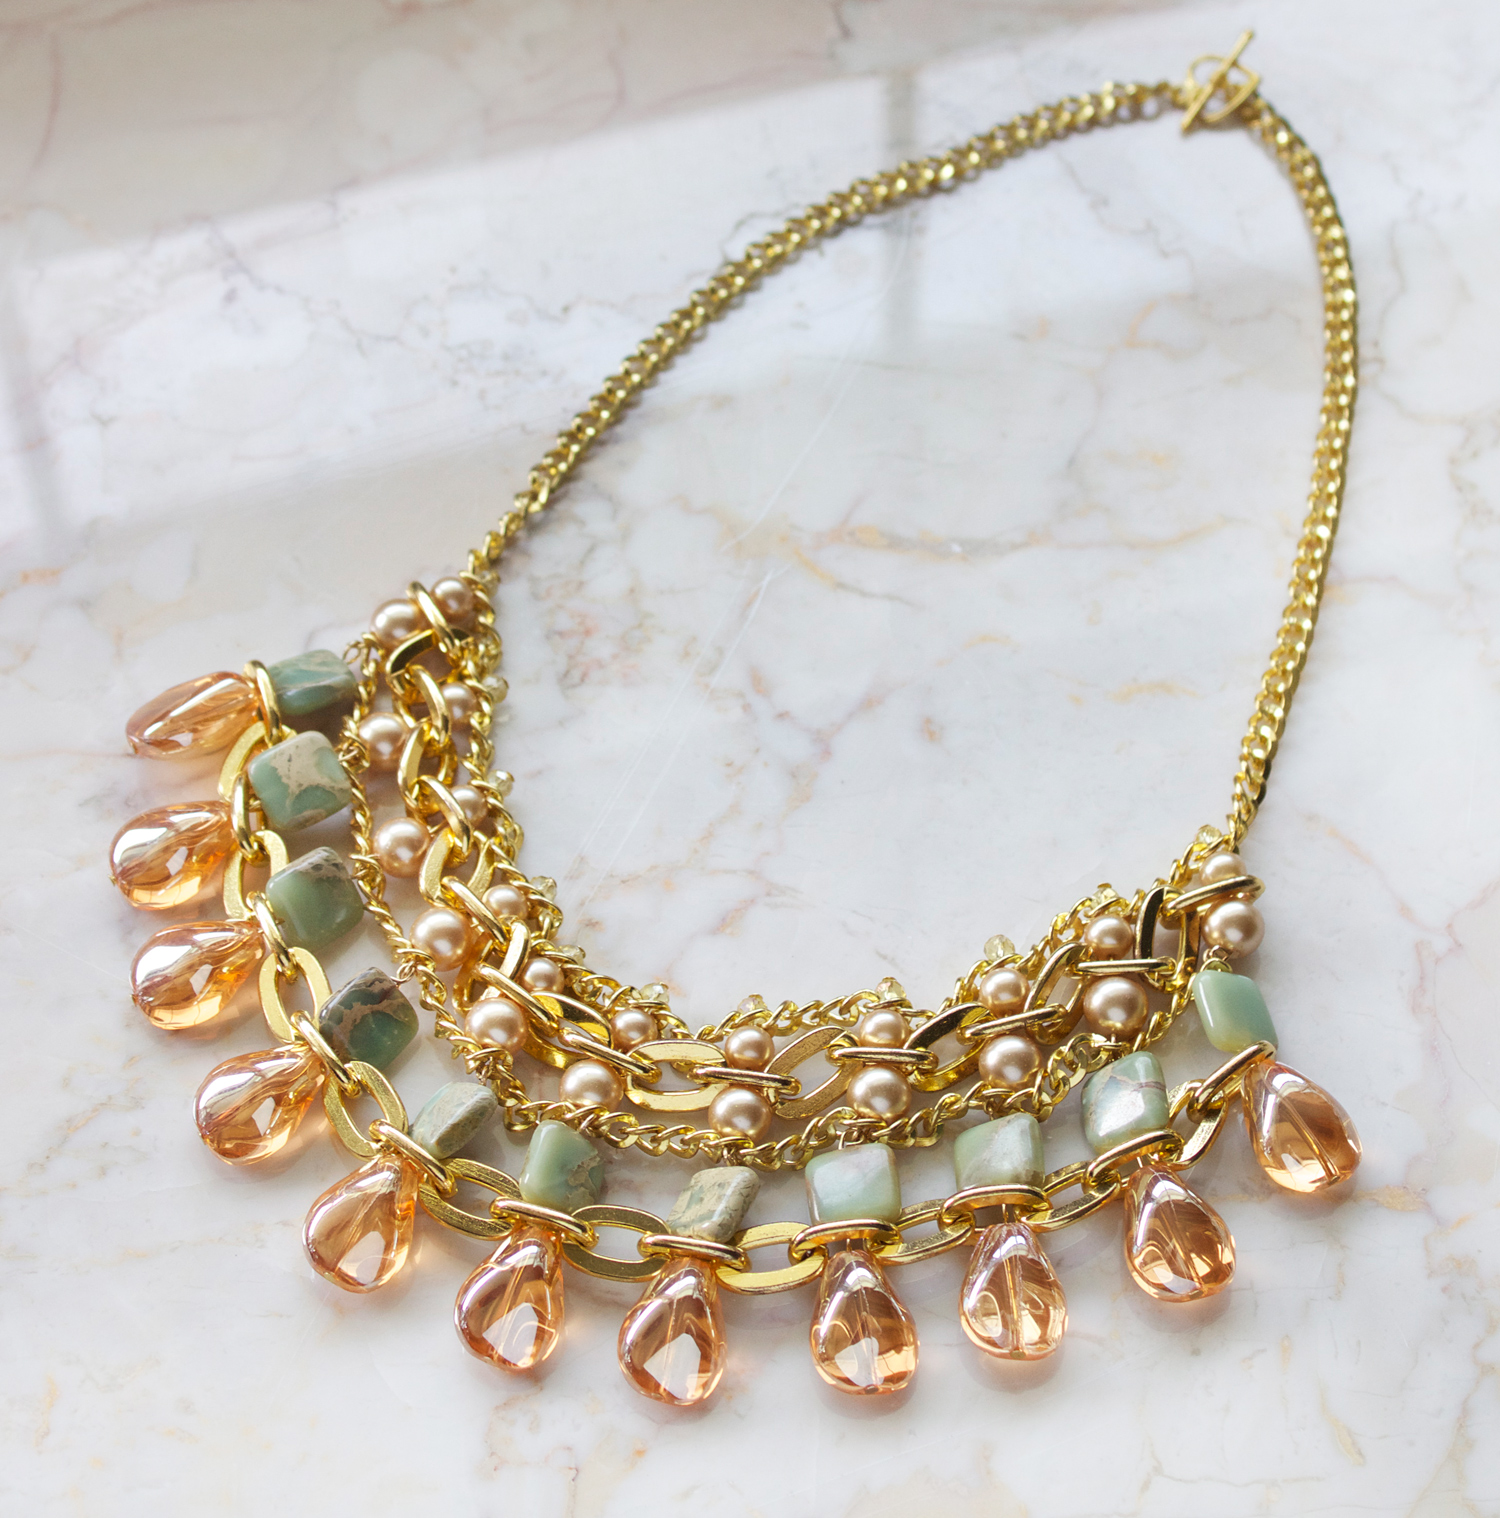 designs trend necklace in chic always easy diy